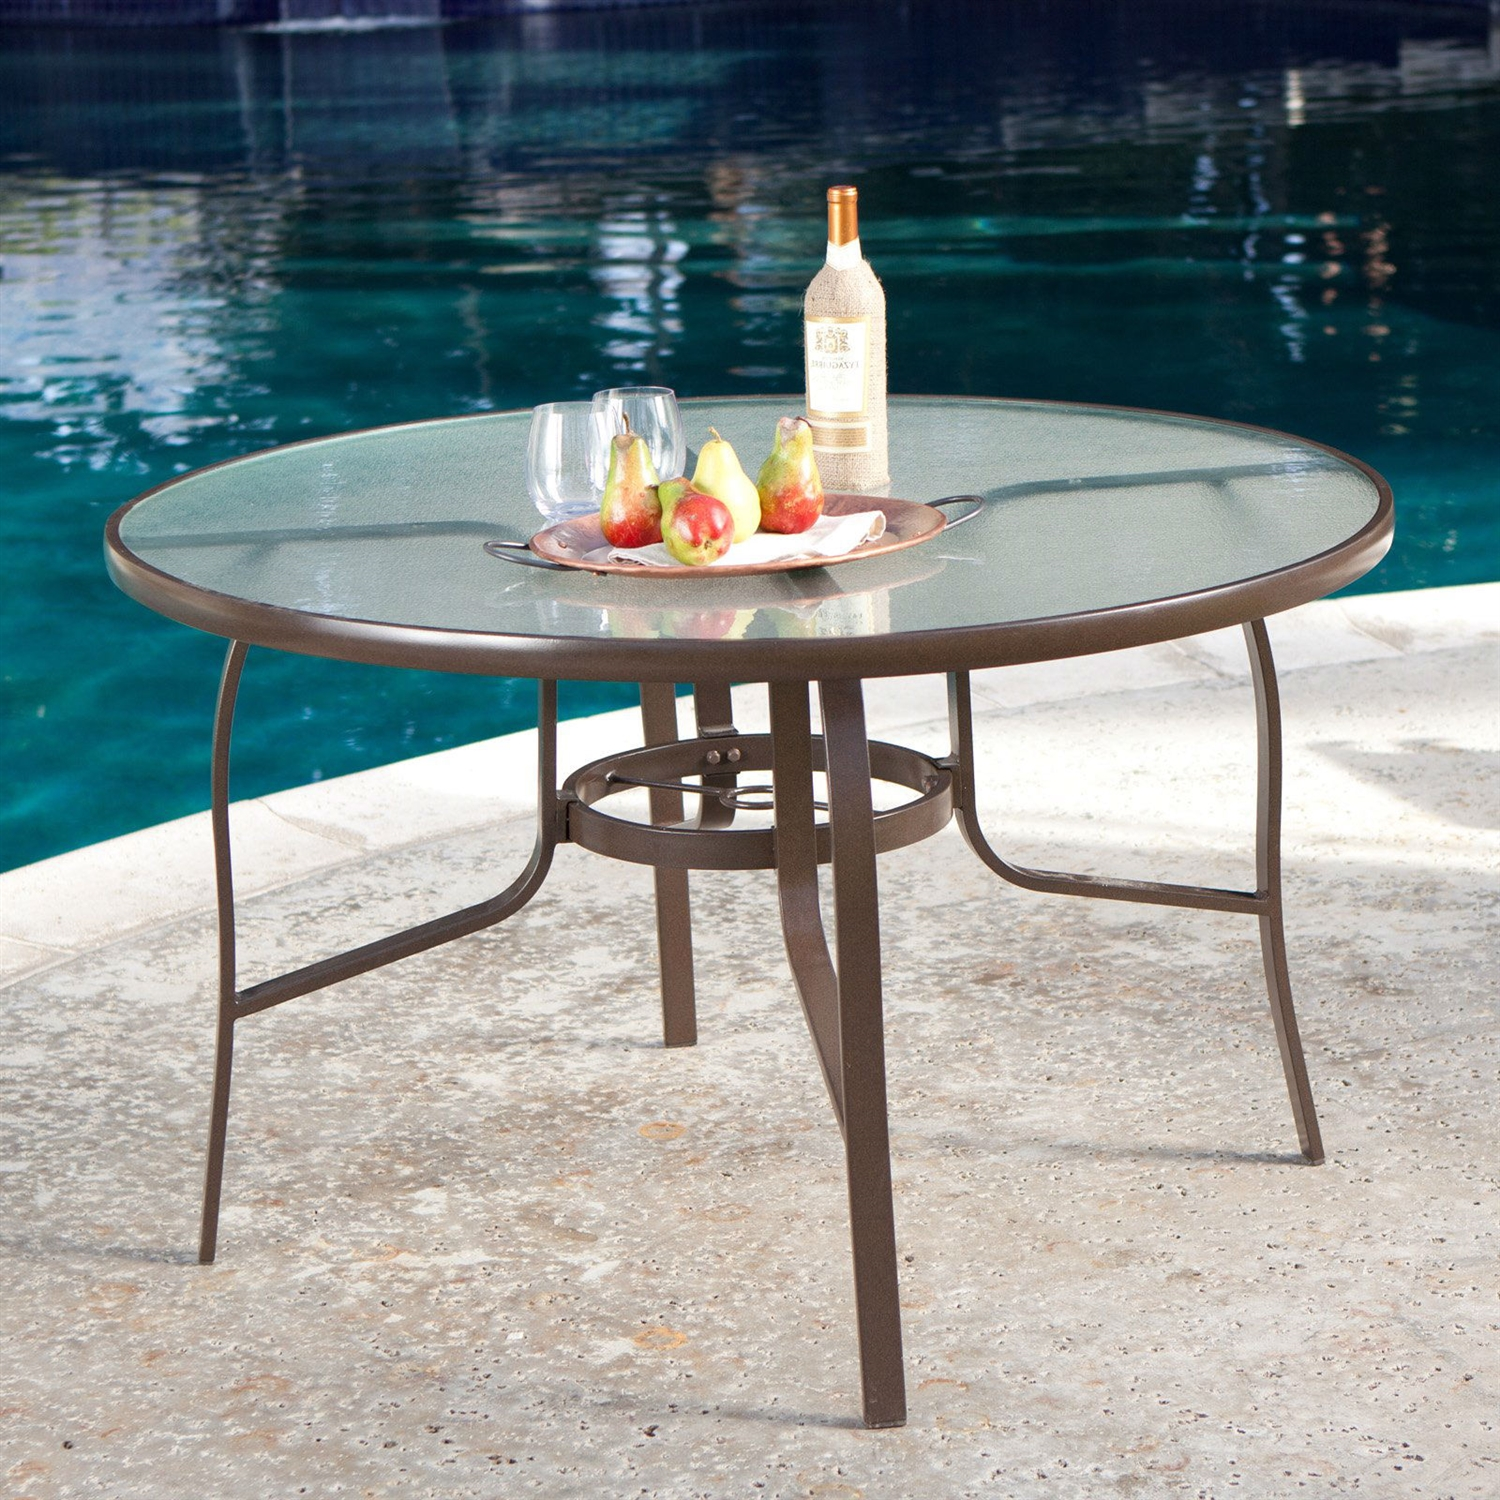 Round Glass Top Patio Table With Umbrella Hole Icamblog